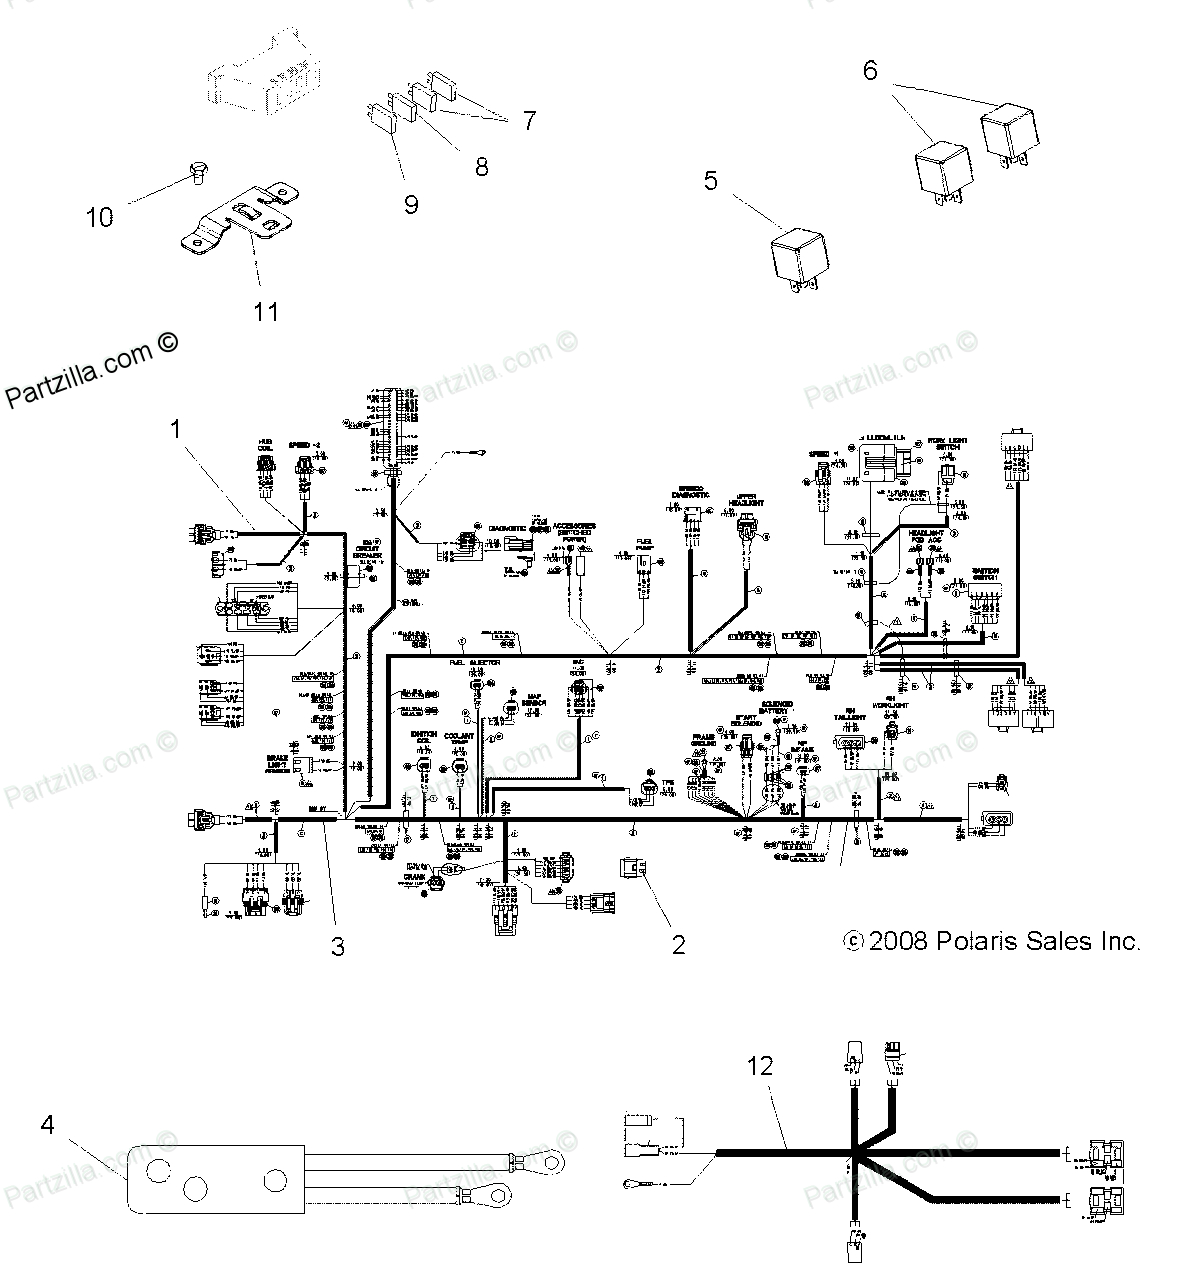 C26CA6 2004 Polaris Sportsman 400 Wiring Diagram | Wiring LibraryWiring Library